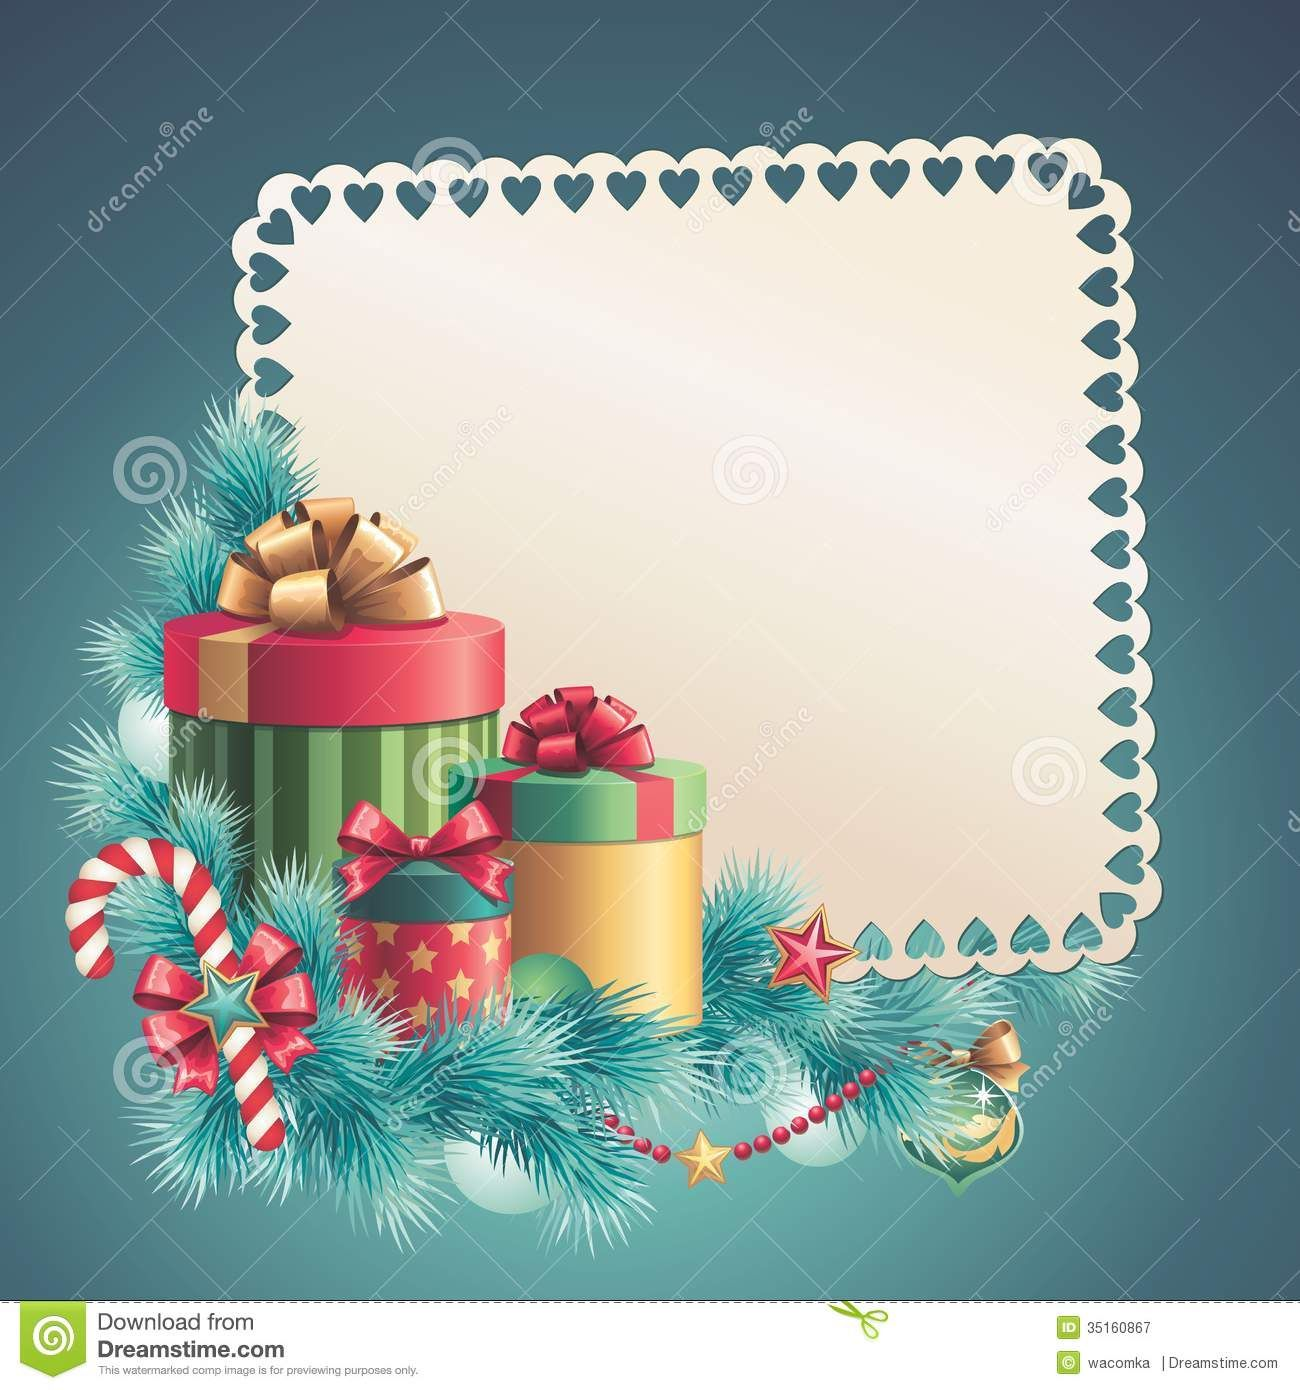 christmas card template Google 検索 Printables 3